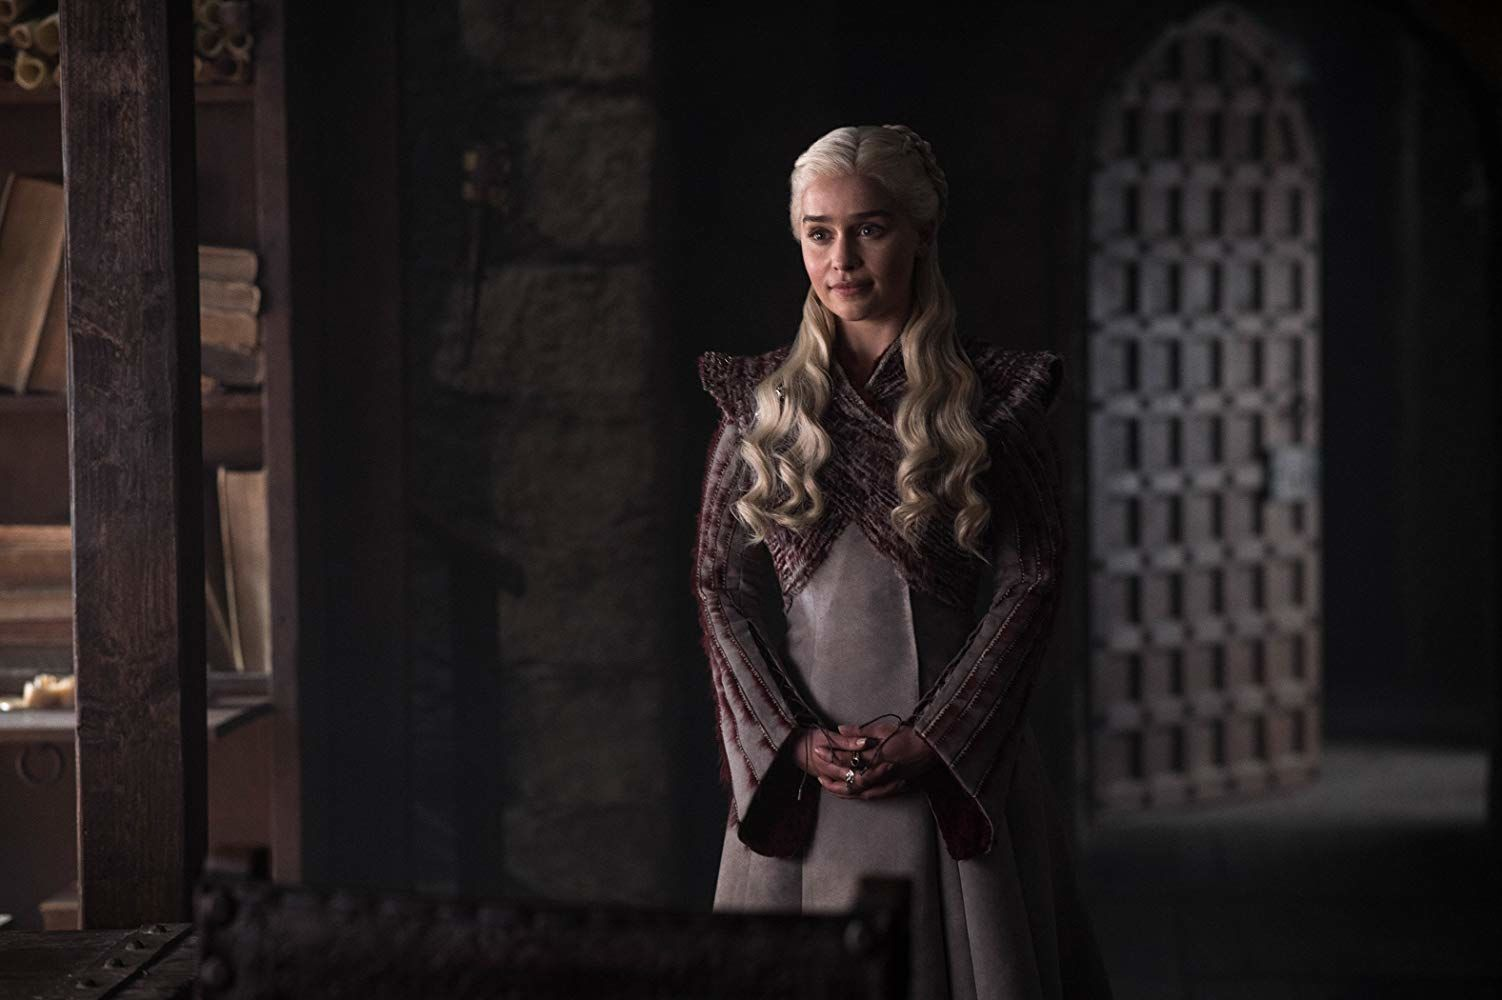 Game of Thrones recap: Fanfiction sex and bonding as Winterfell preps for the Night King